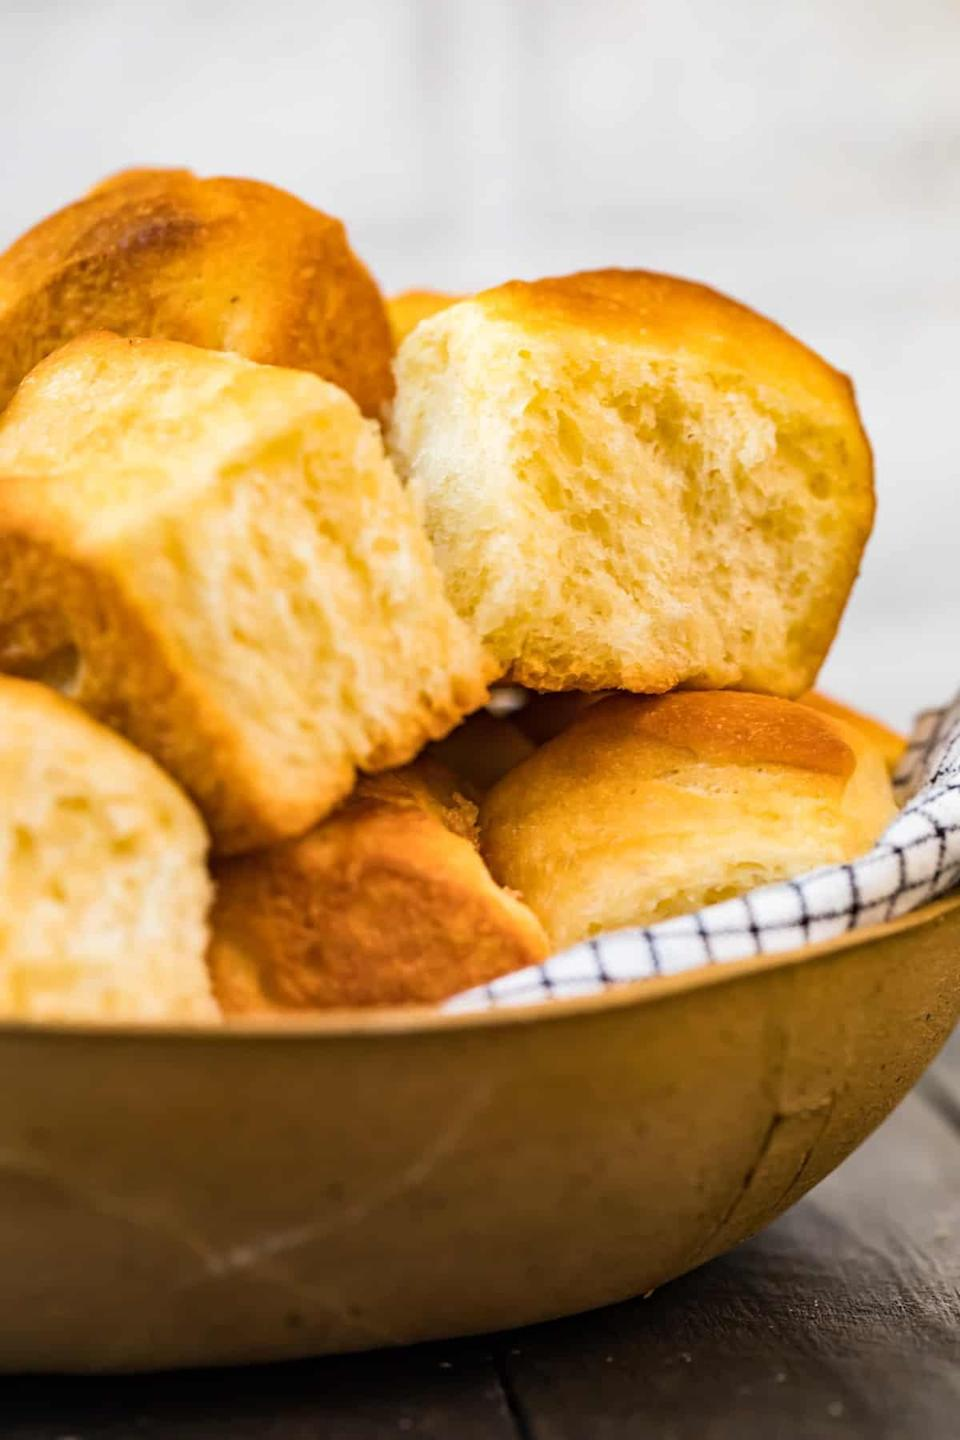 """<p>If you want to make Thanksgiving dinner a breeze, we suggest whipping up these rolls ahead of time. Pair them with butter, jam, gravy, or honey, and enjoy them in between bites of turkey and stuffing.</p> <p><strong>Get the recipe</strong>: <a href=""""https://www.thecookierookie.com/make-ahead-yeast-rolls/"""" class=""""link rapid-noclick-resp"""" rel=""""nofollow noopener"""" target=""""_blank"""" data-ylk=""""slk:make-ahead yeast rolls"""">make-ahead yeast rolls</a></p>"""